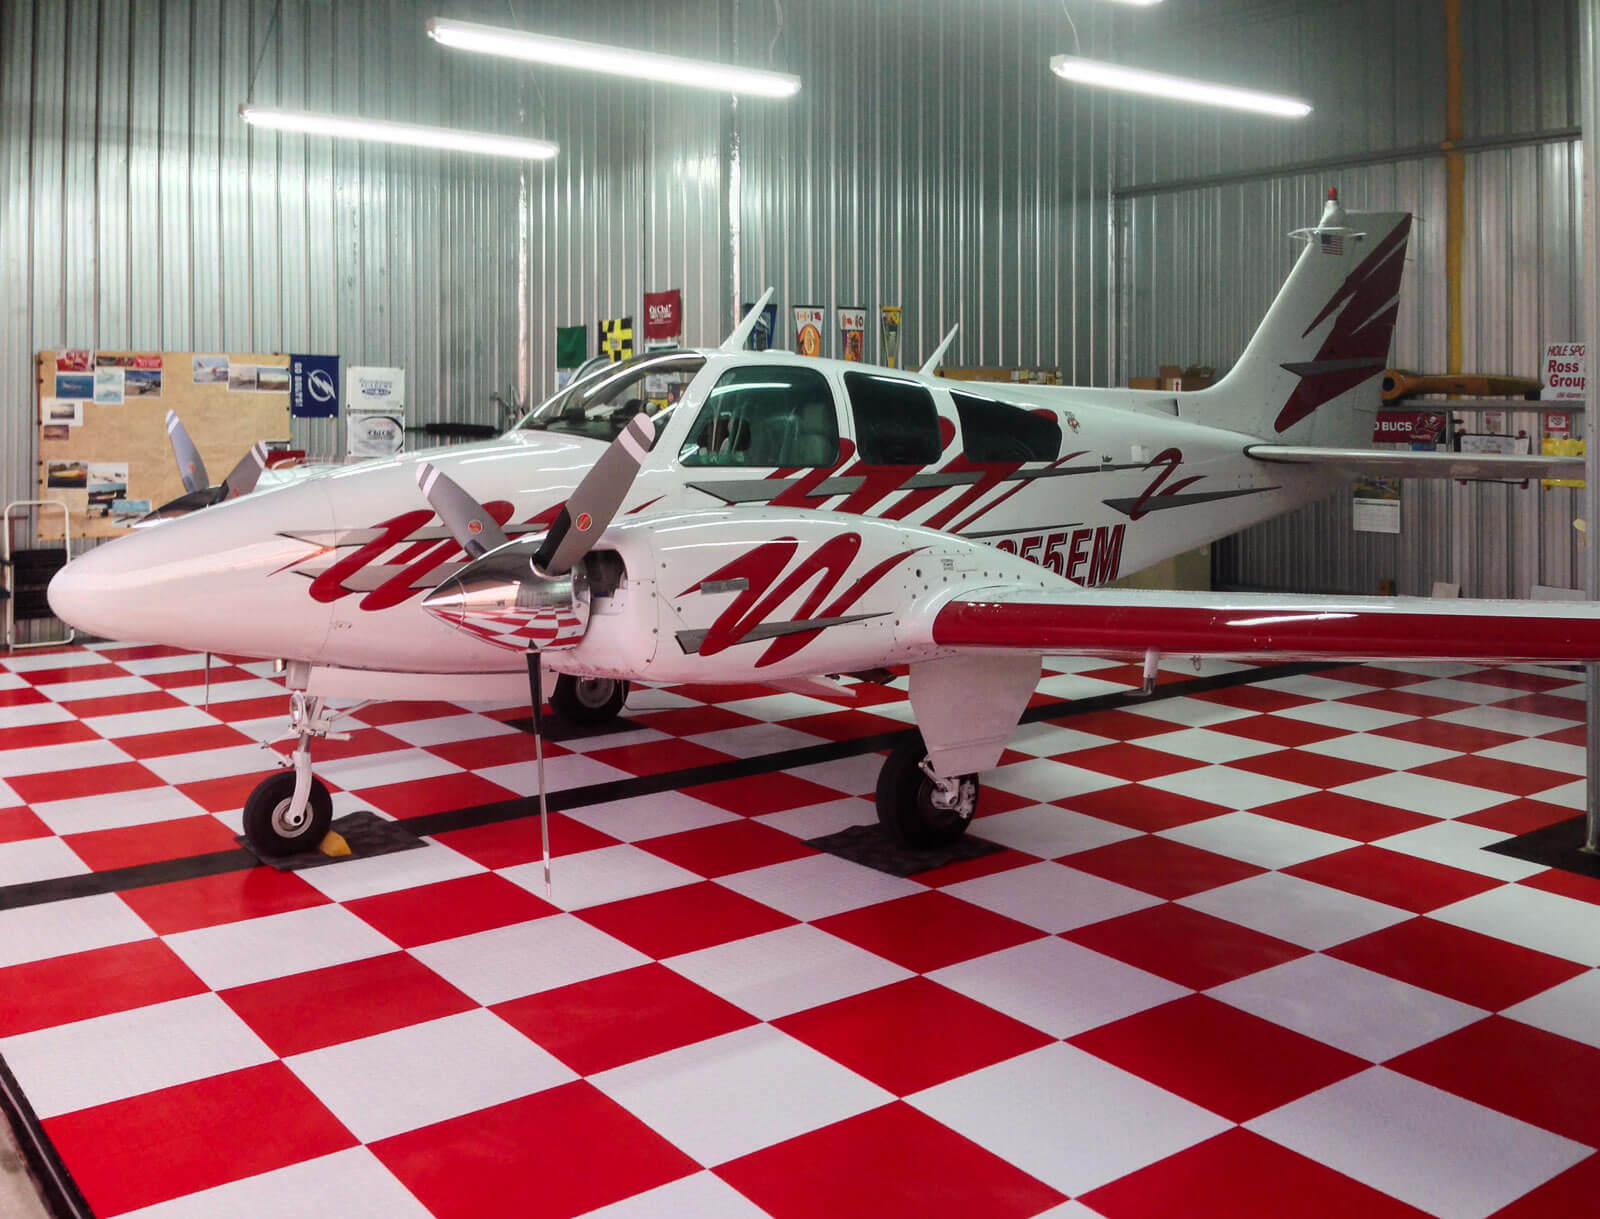 Airplane hangar with red and white RaceDeck flooring